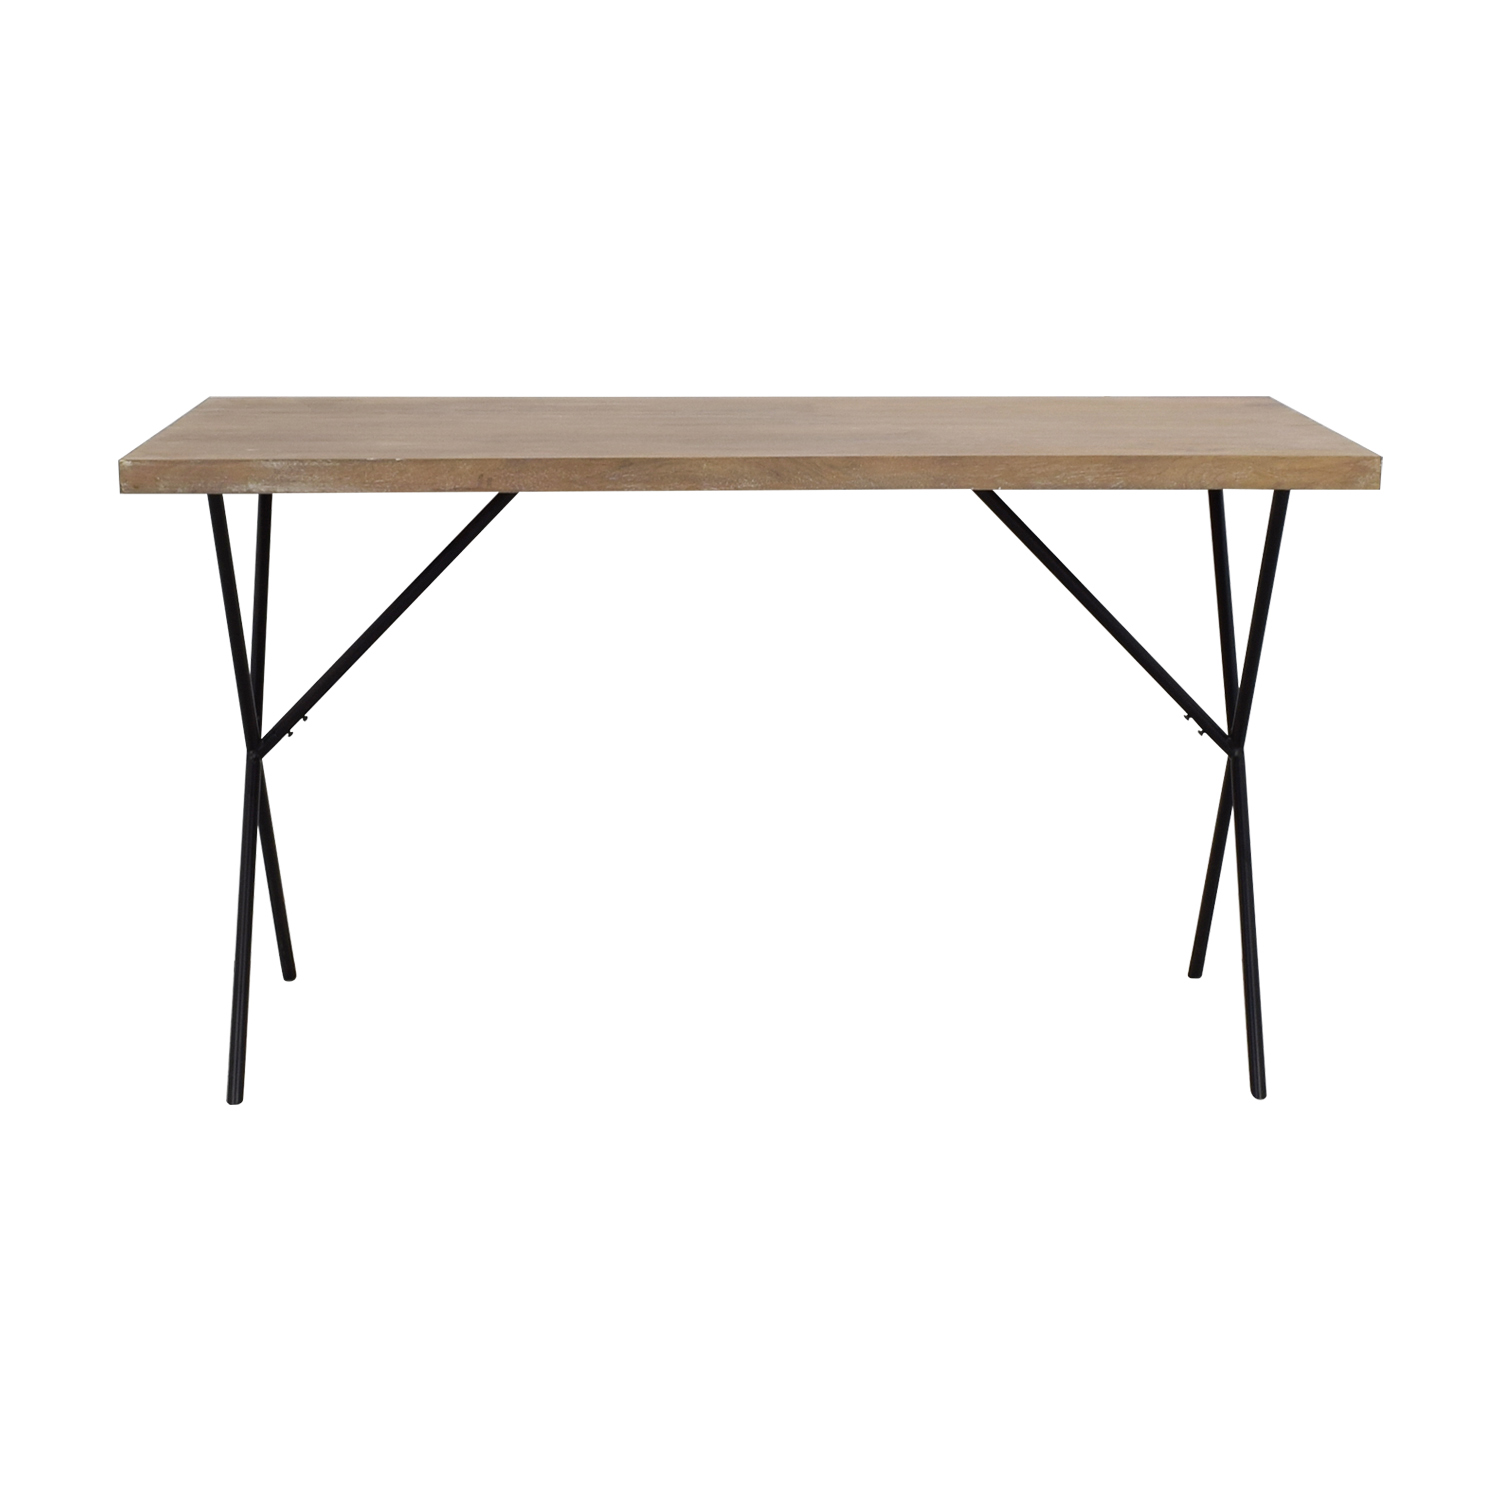 West Elm West Elm Metal Truss Work Table price